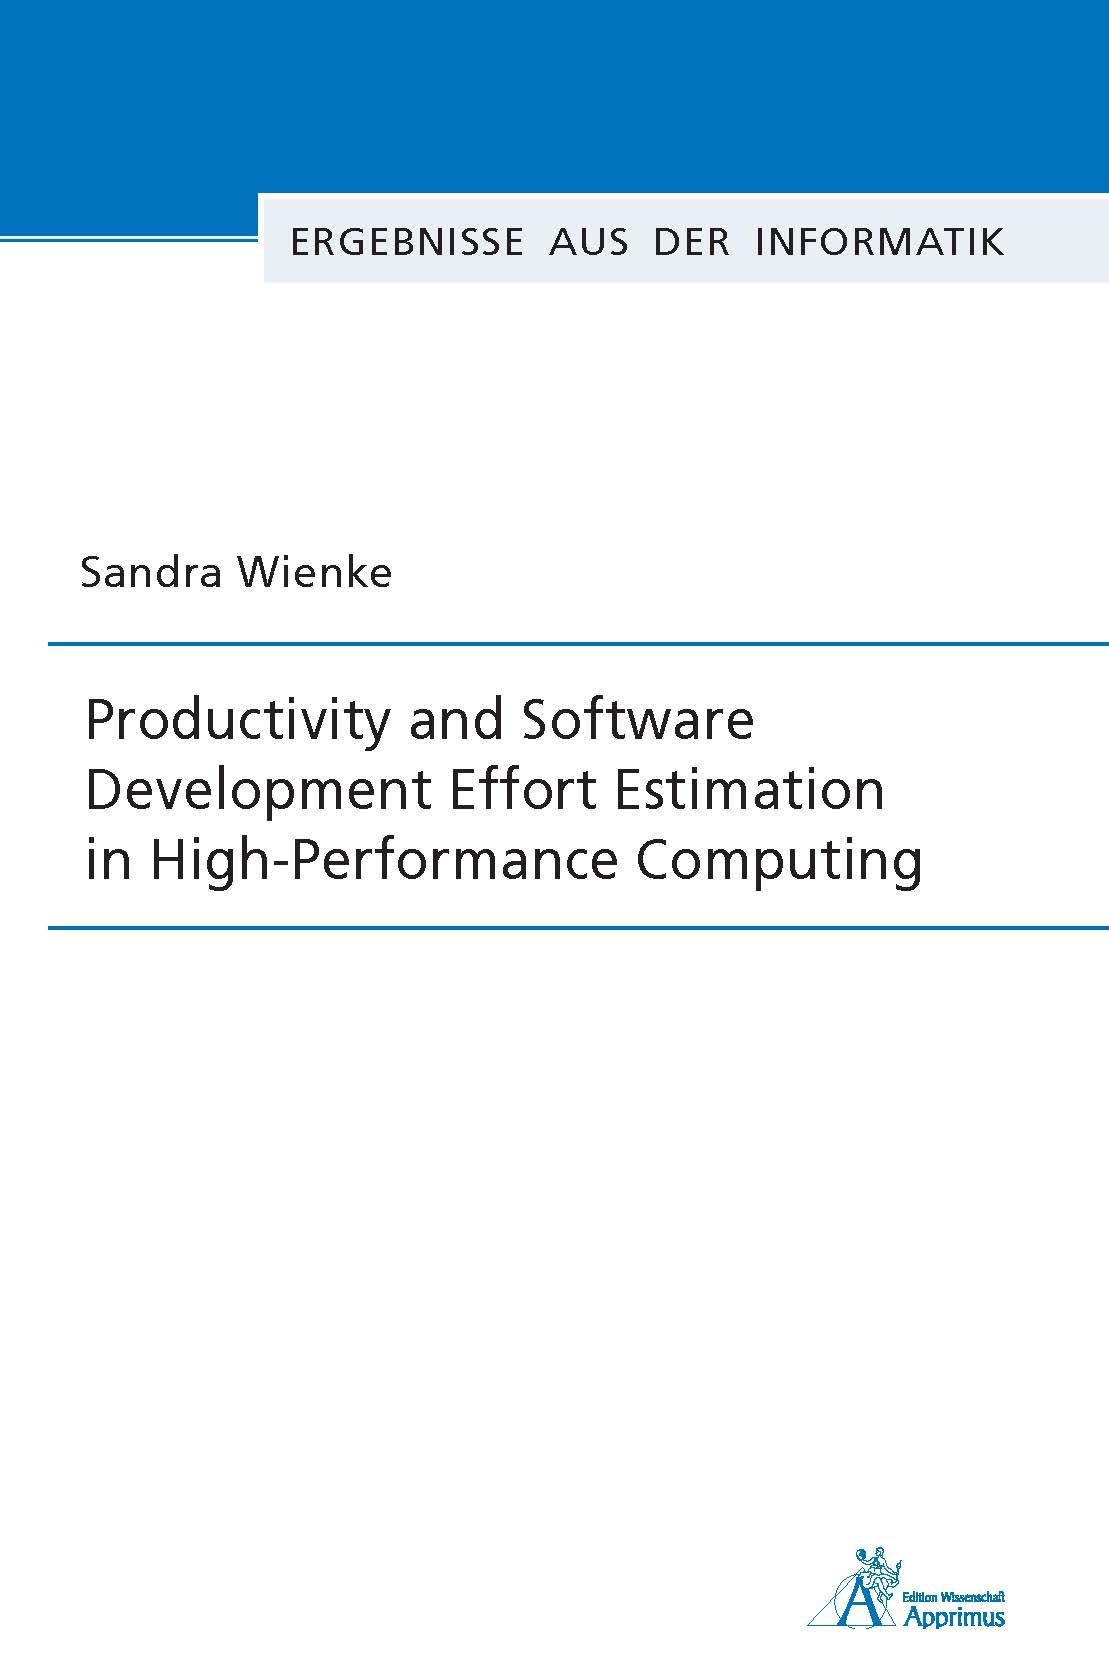 Productivity and Software Development Effort Estimation in High-Performance Computing